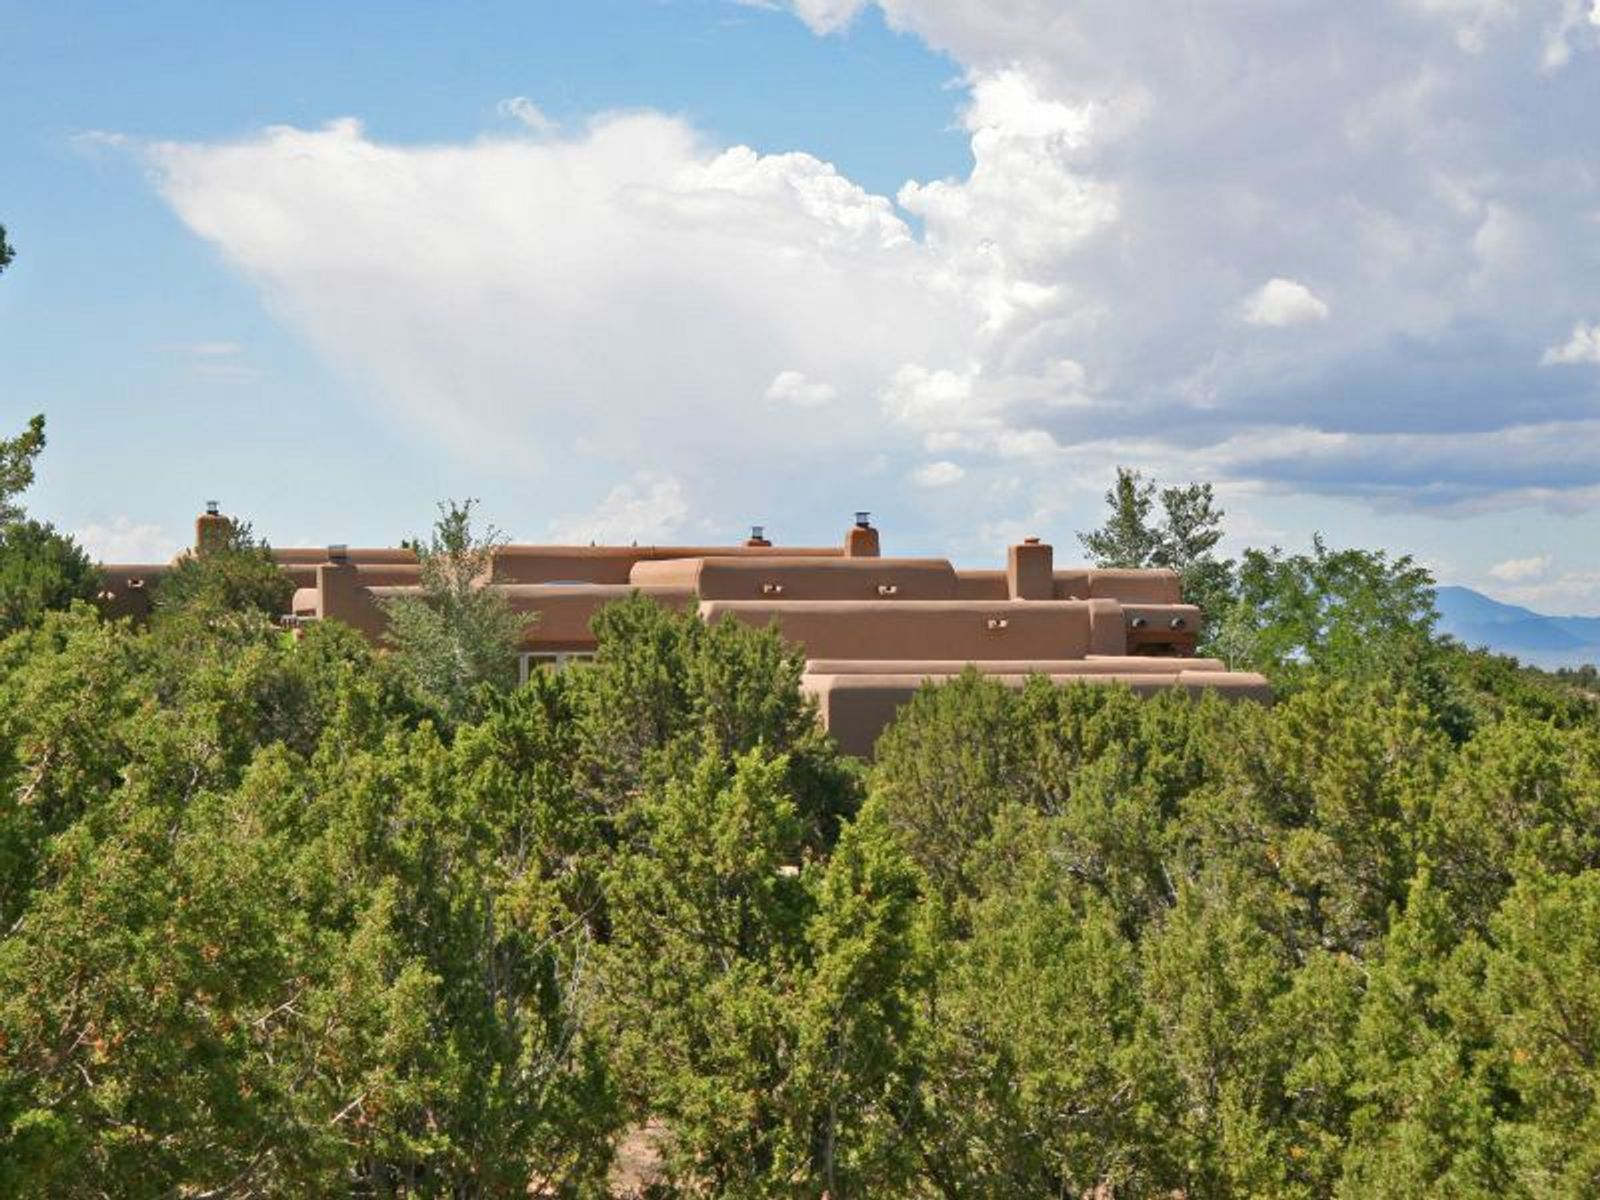 54 Sunflower Drive, Santa Fe NM Single Family Home - Santa Fe Real Estate